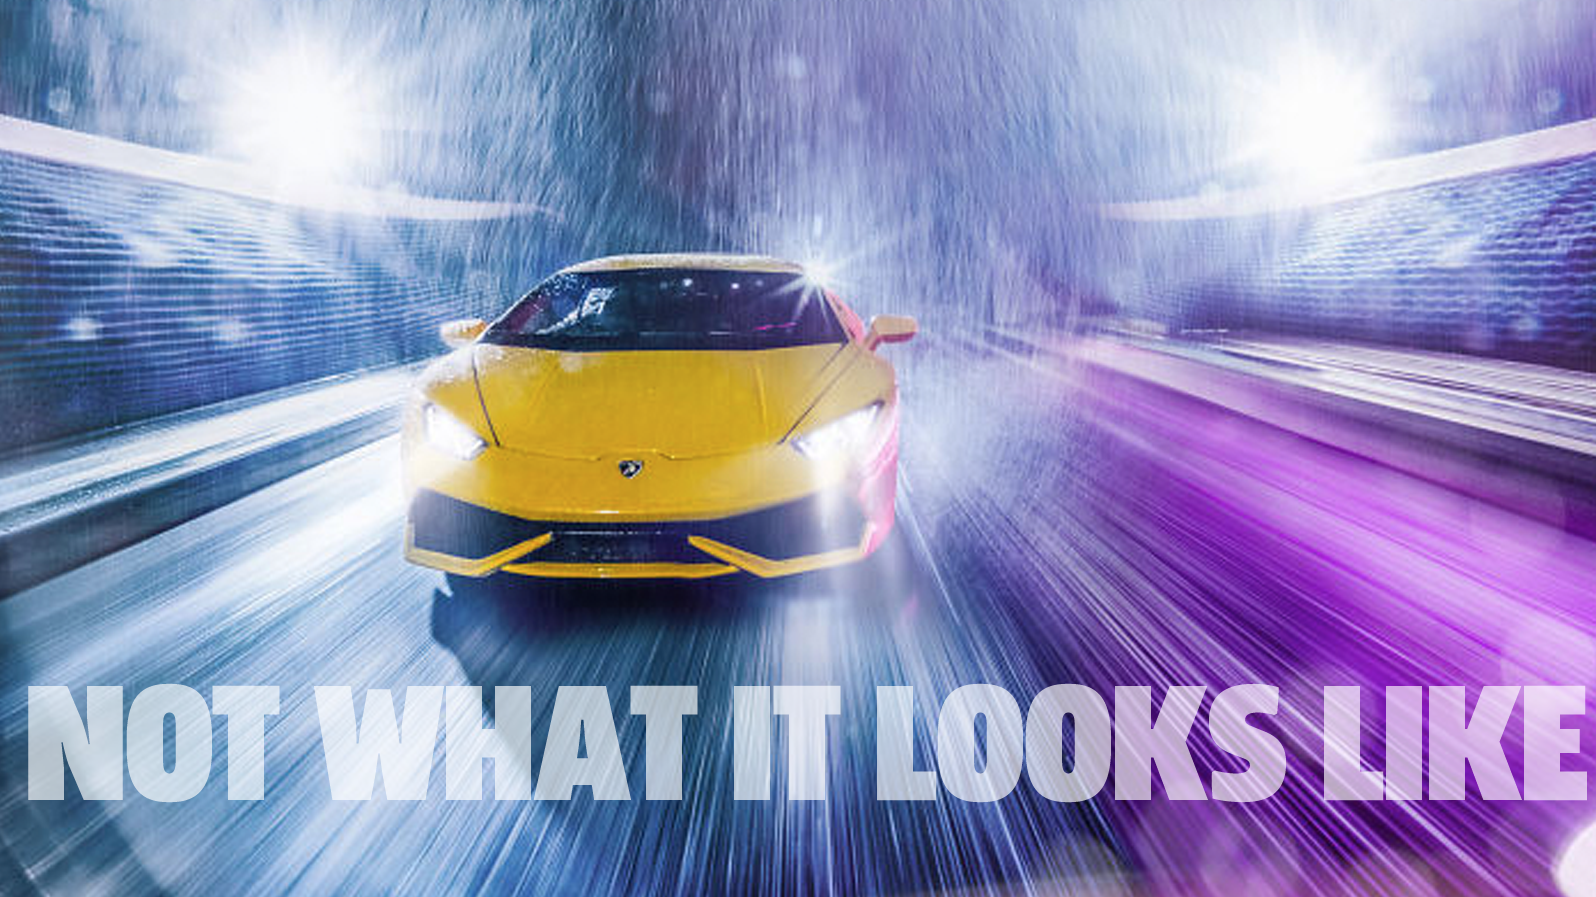 This Isn't A Picture Of A Lamborghini Driving On A Track In The Rain